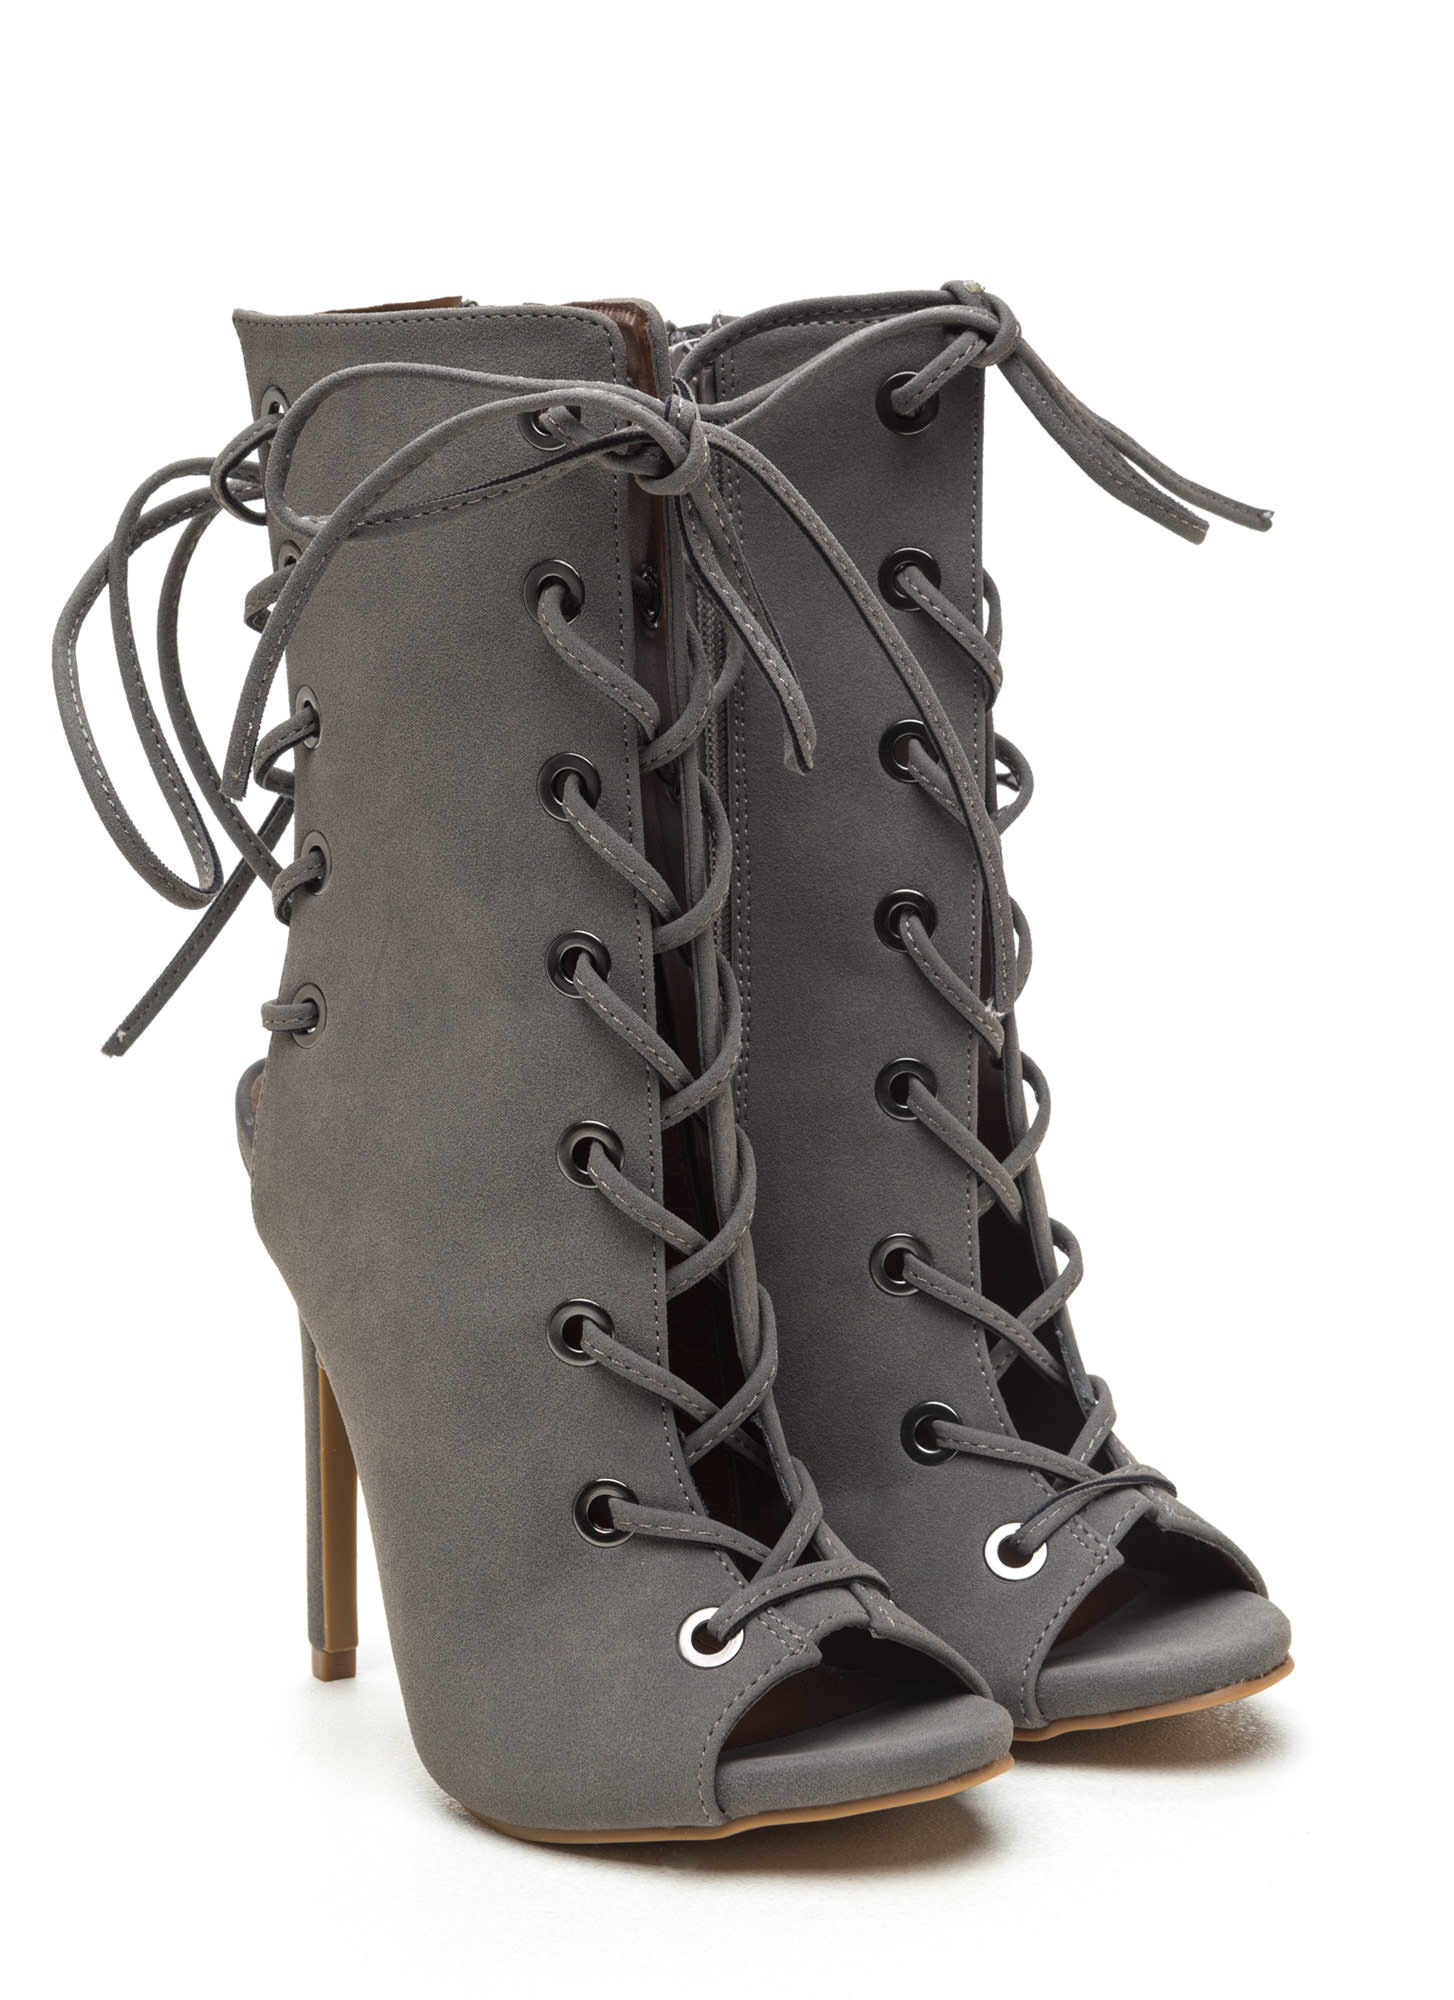 Back lace up boots - Front And Back Lace Up Booties Wine Black Grey Gojane Com